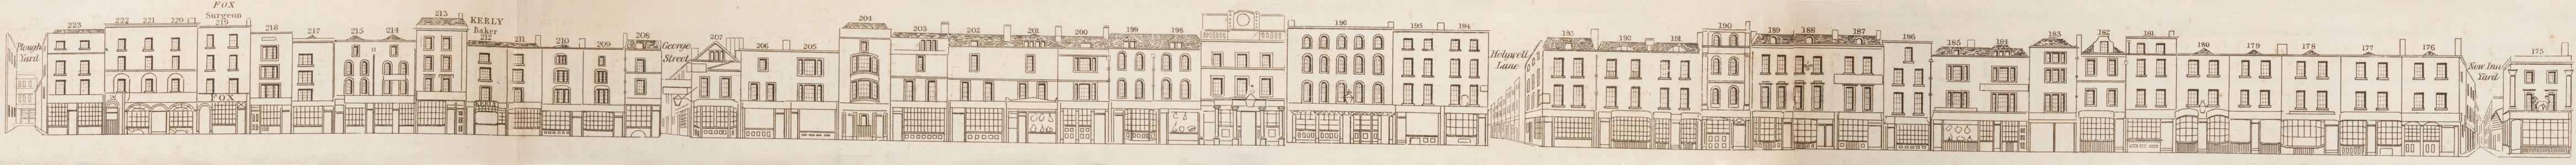 map - Tallis's London street views : No. 59. Shoreditch, division 2 (west)